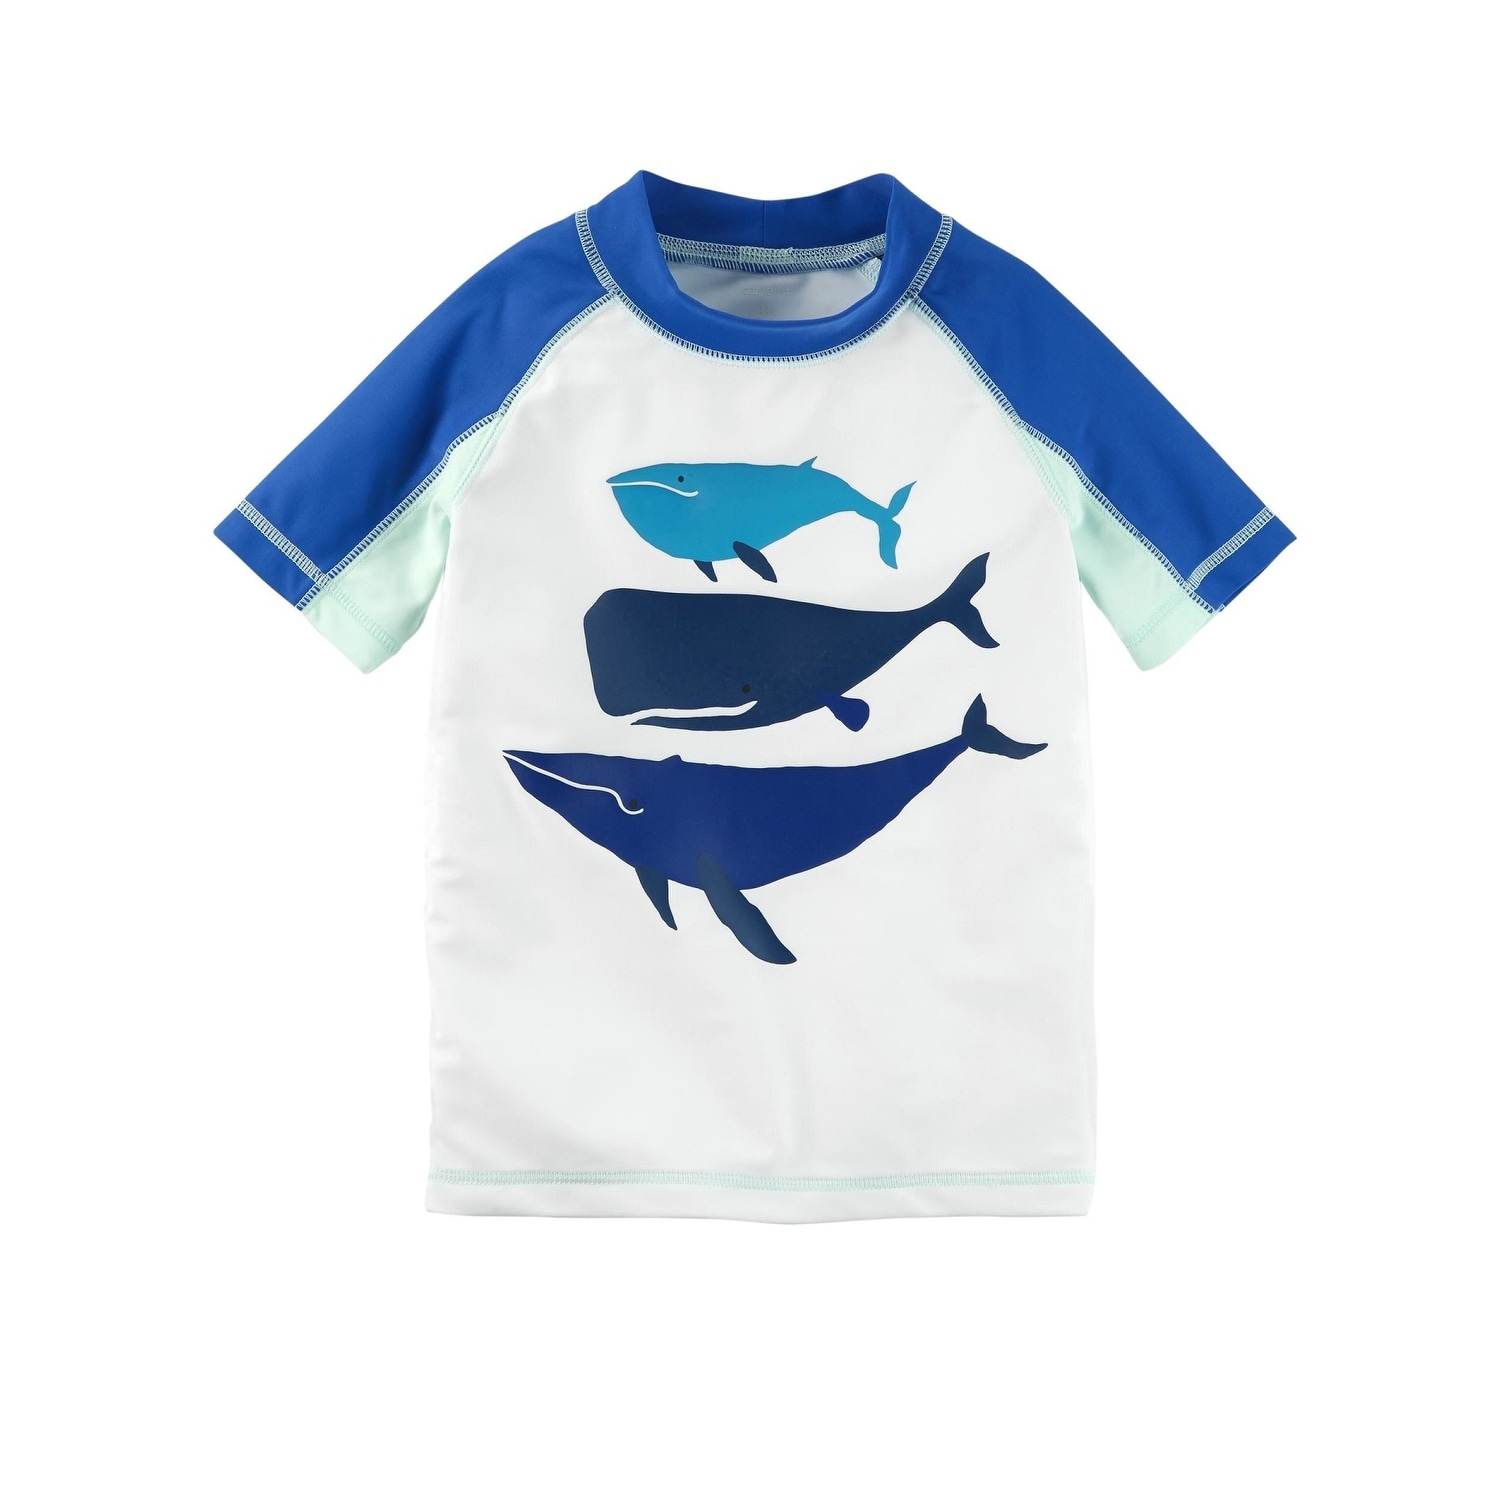 346d8345a2 Shop Carter's Baby Boys' Whale Rashguard, 9 Months - Free Shipping On  Orders Over $45 - Overstock - 27149197